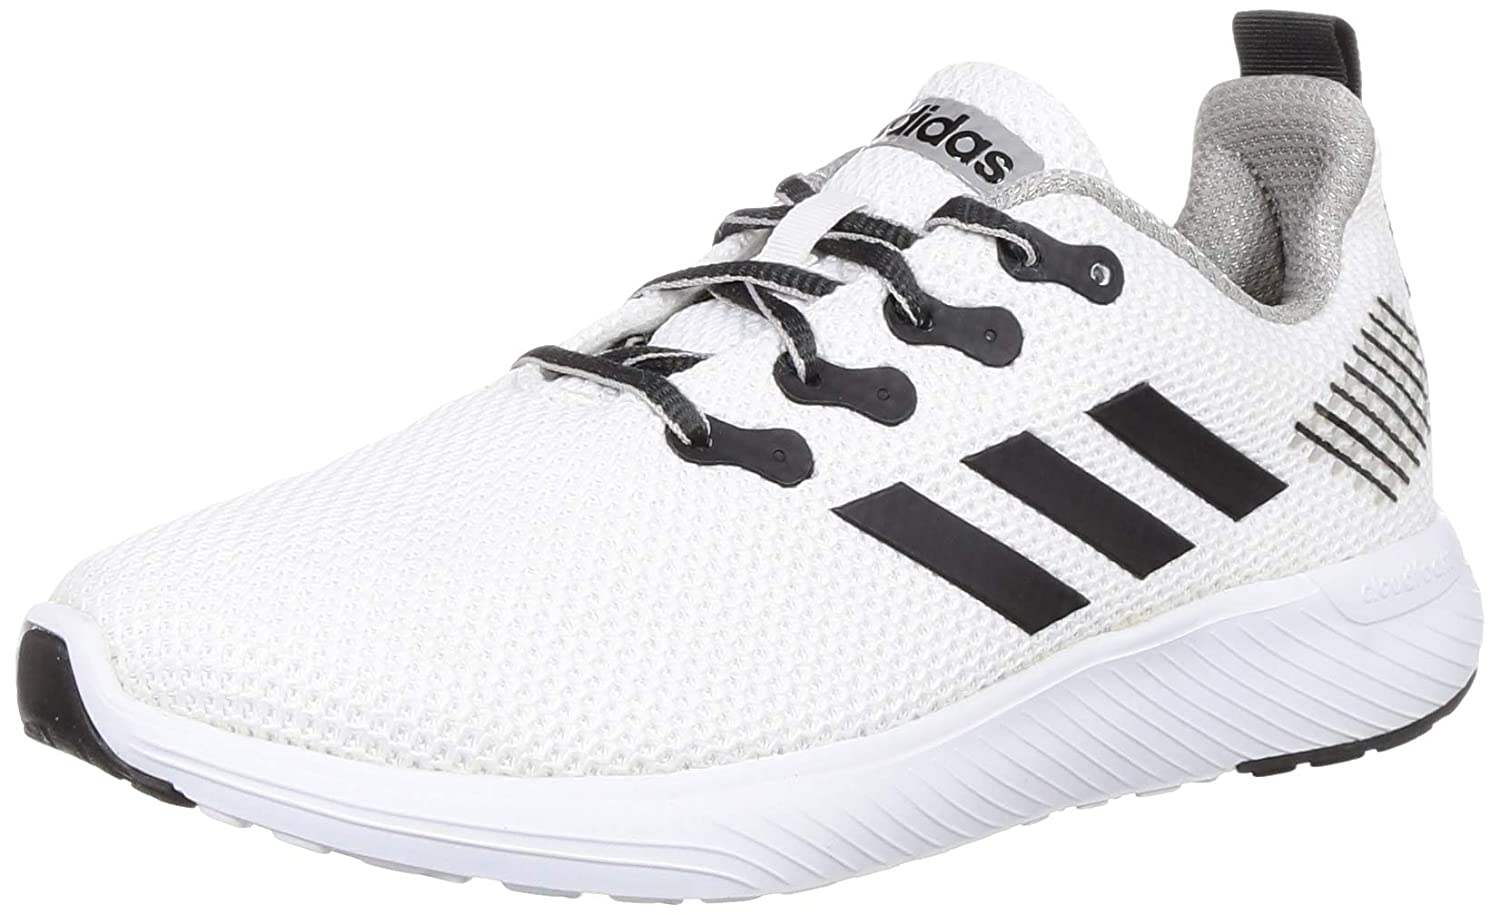 Adidas Men's Flank M Running Shoes – Size 10